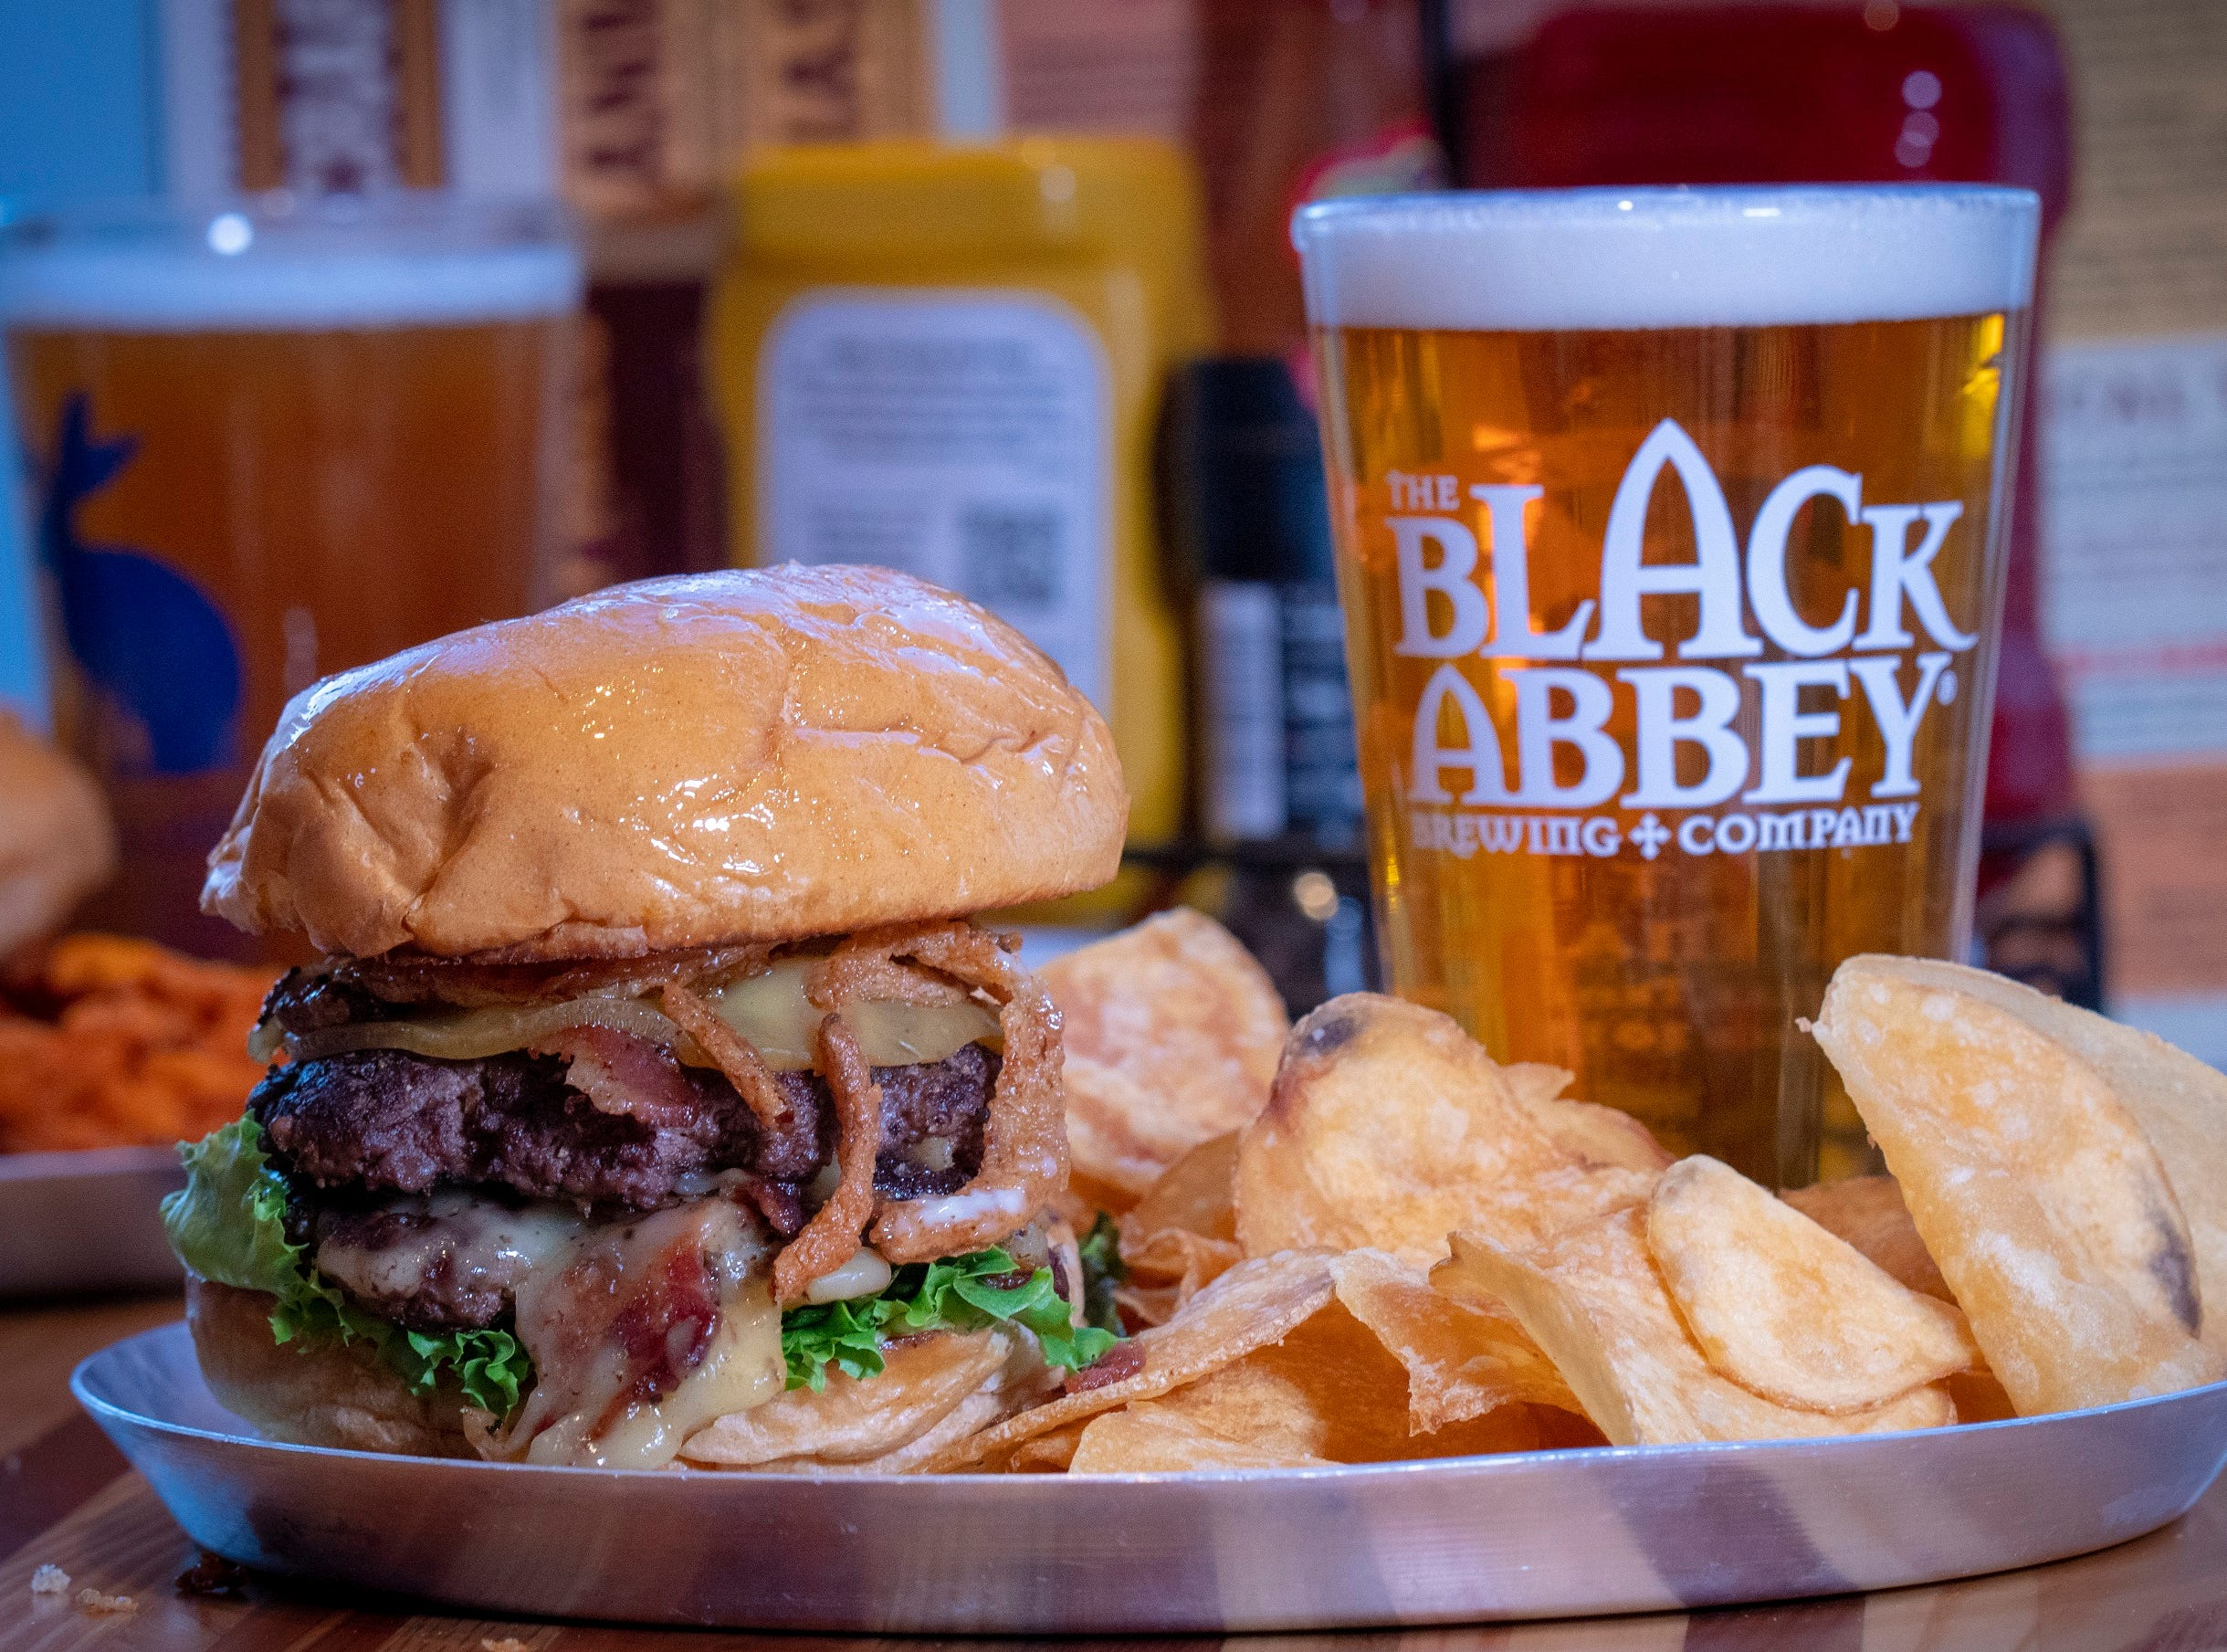 The Belgian smashed double patty stack with smoked Gouda, onions, bacon and garlic peppercorn aioli with Black Abbey's Belgian blonde ale, The Rose.